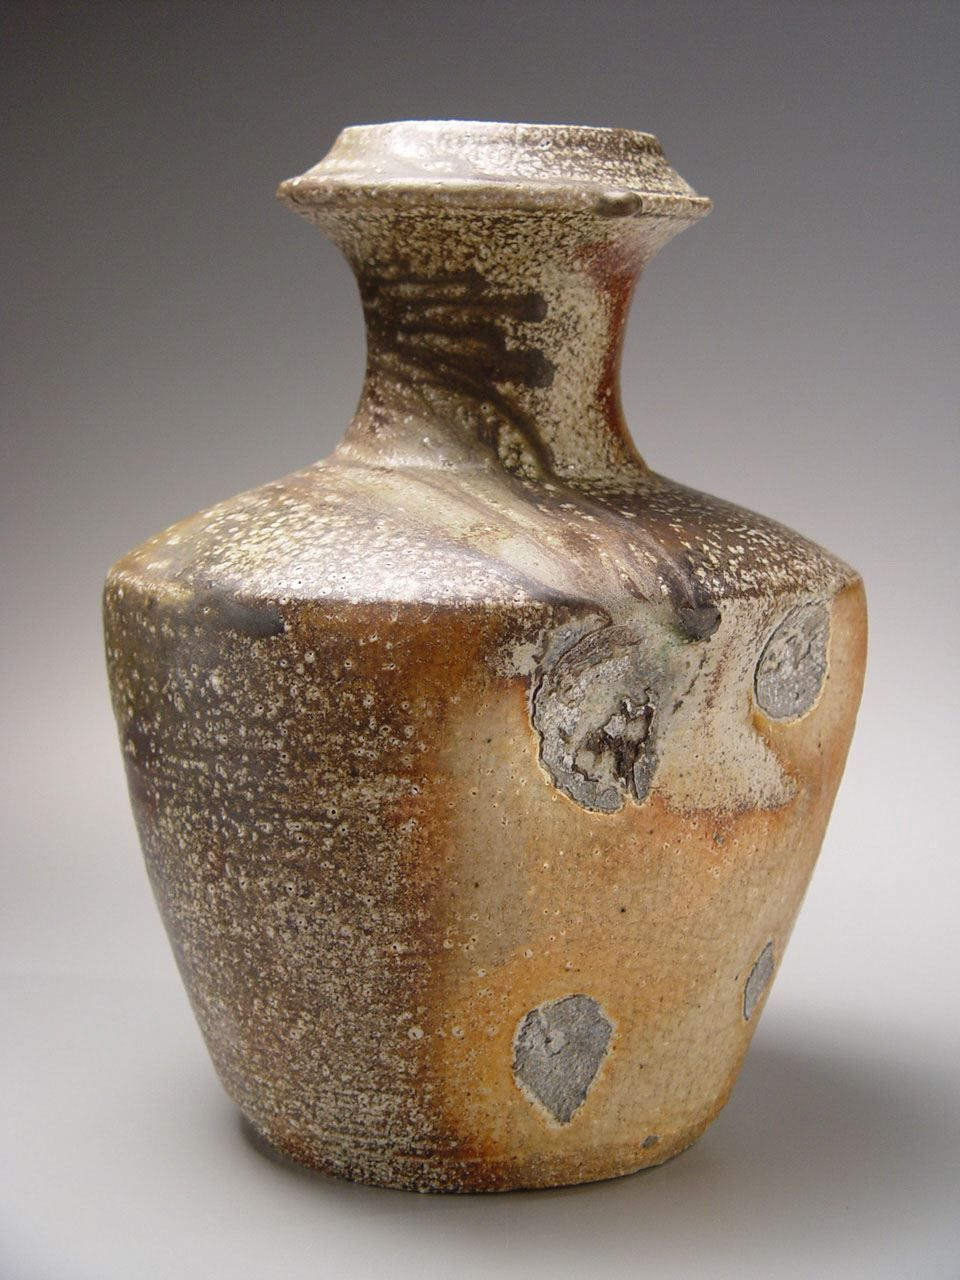 Shimaoka Tatsuzo, Vase with lightly visible impressed-rope pattern design and tapered neck, ca. 1987, Japanese contemporary ceramics